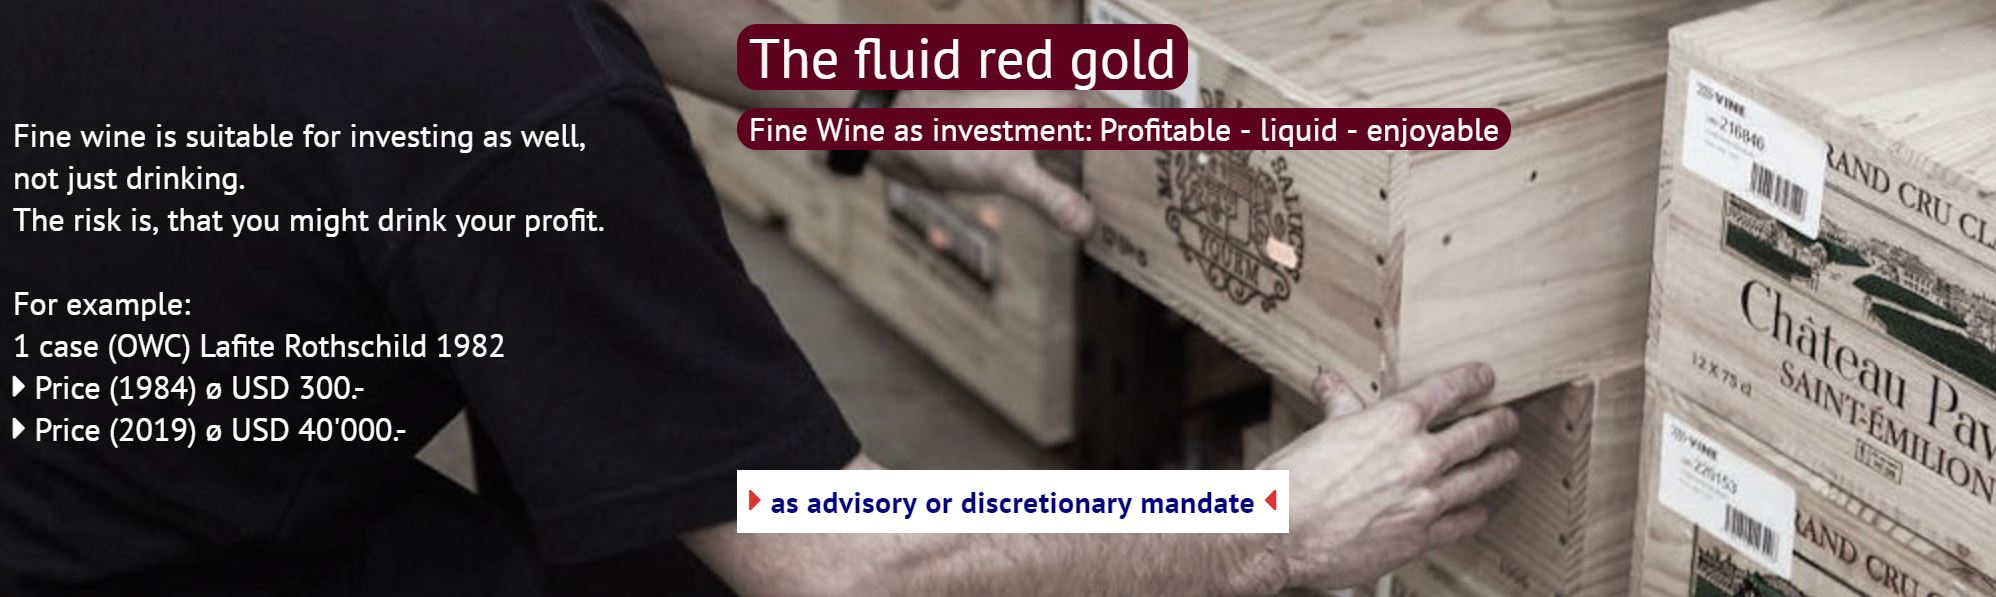 Fine Wine as investment - the red gold